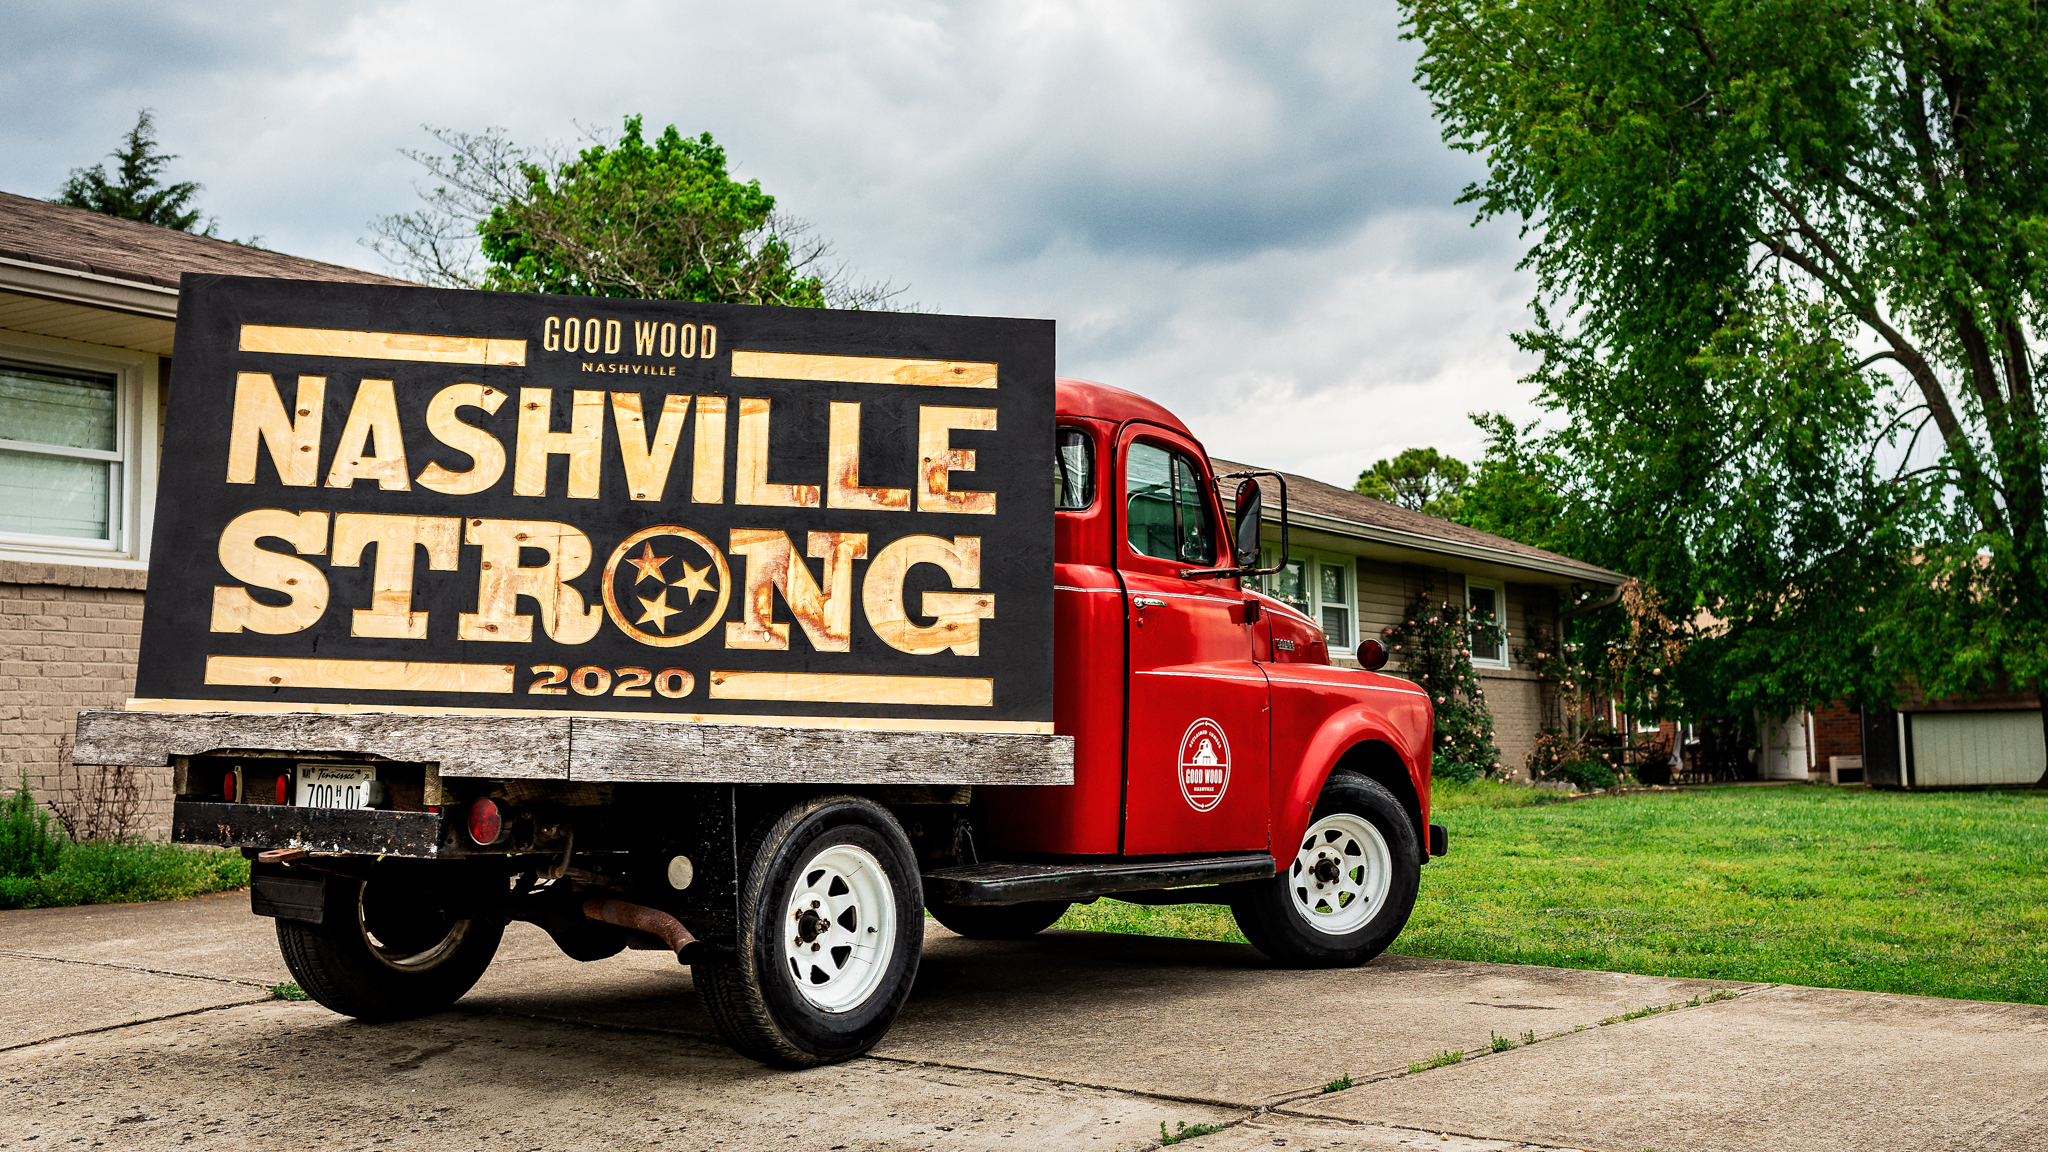 Goodwood-NashvilleStrong-18-HDR-sRGB-ENWeb